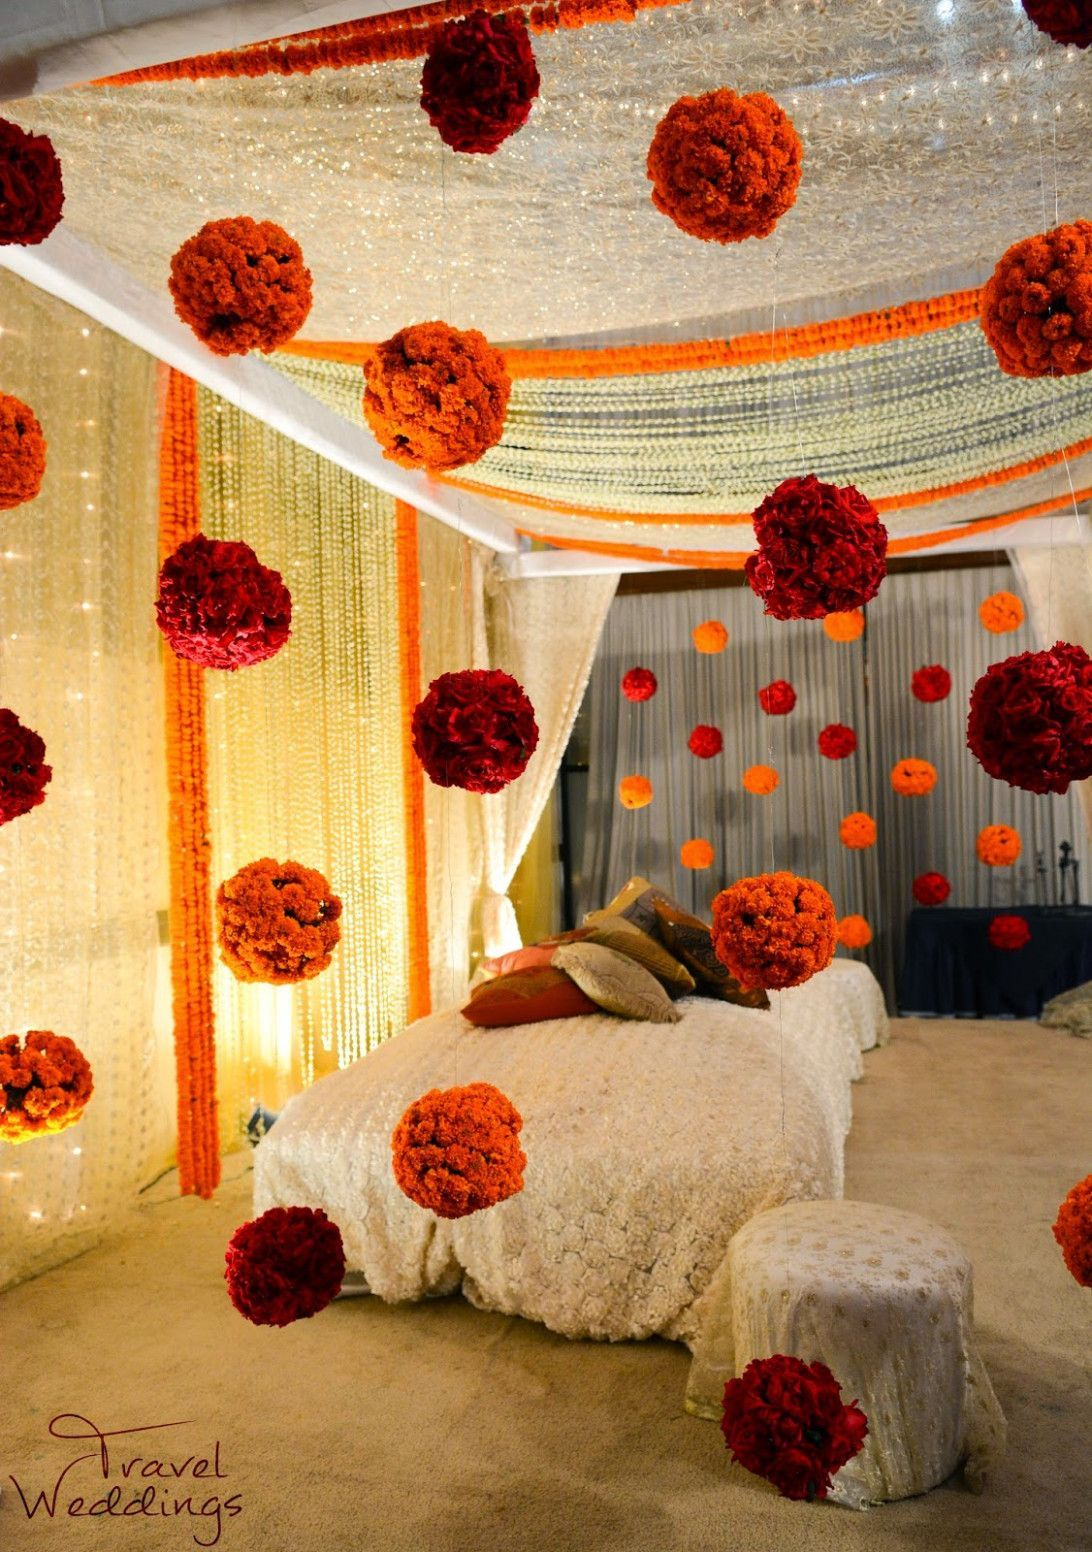 Steps In Planning A Wedding With Images